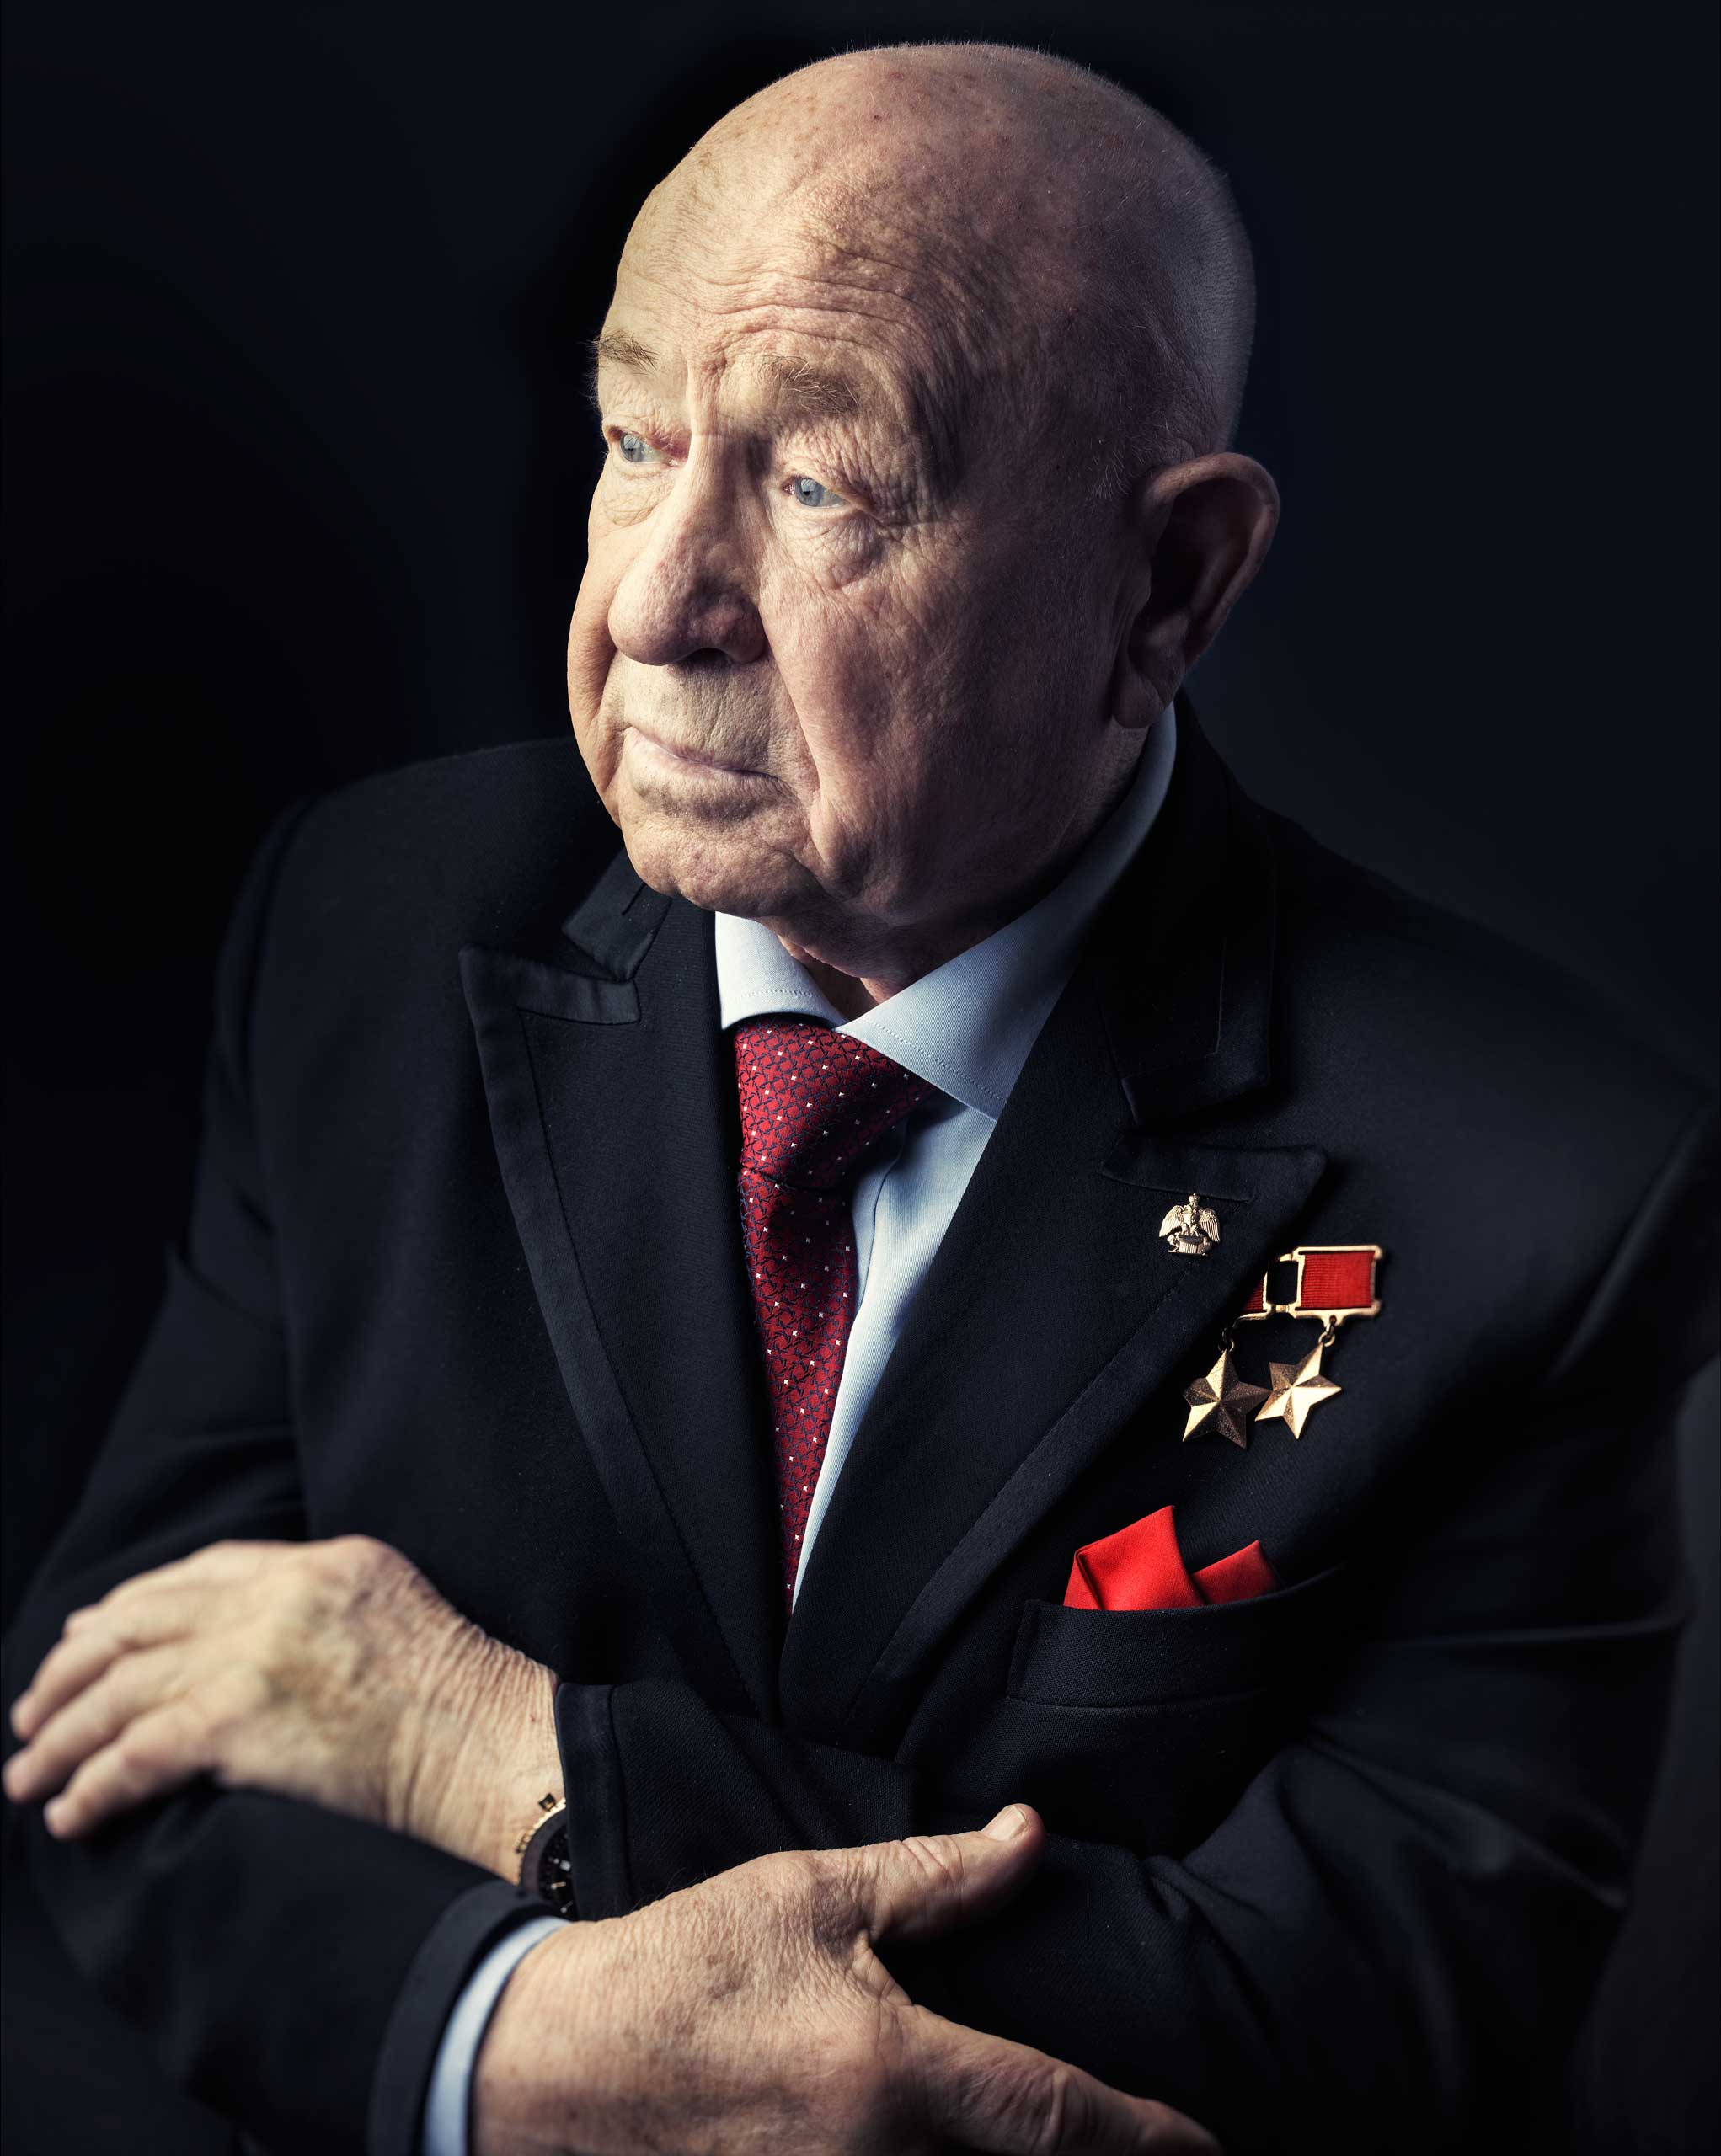 Alexei Leonov, the first man to walk in space, photographed at the age of 80 in his office in Moscow on March 12, 2015.